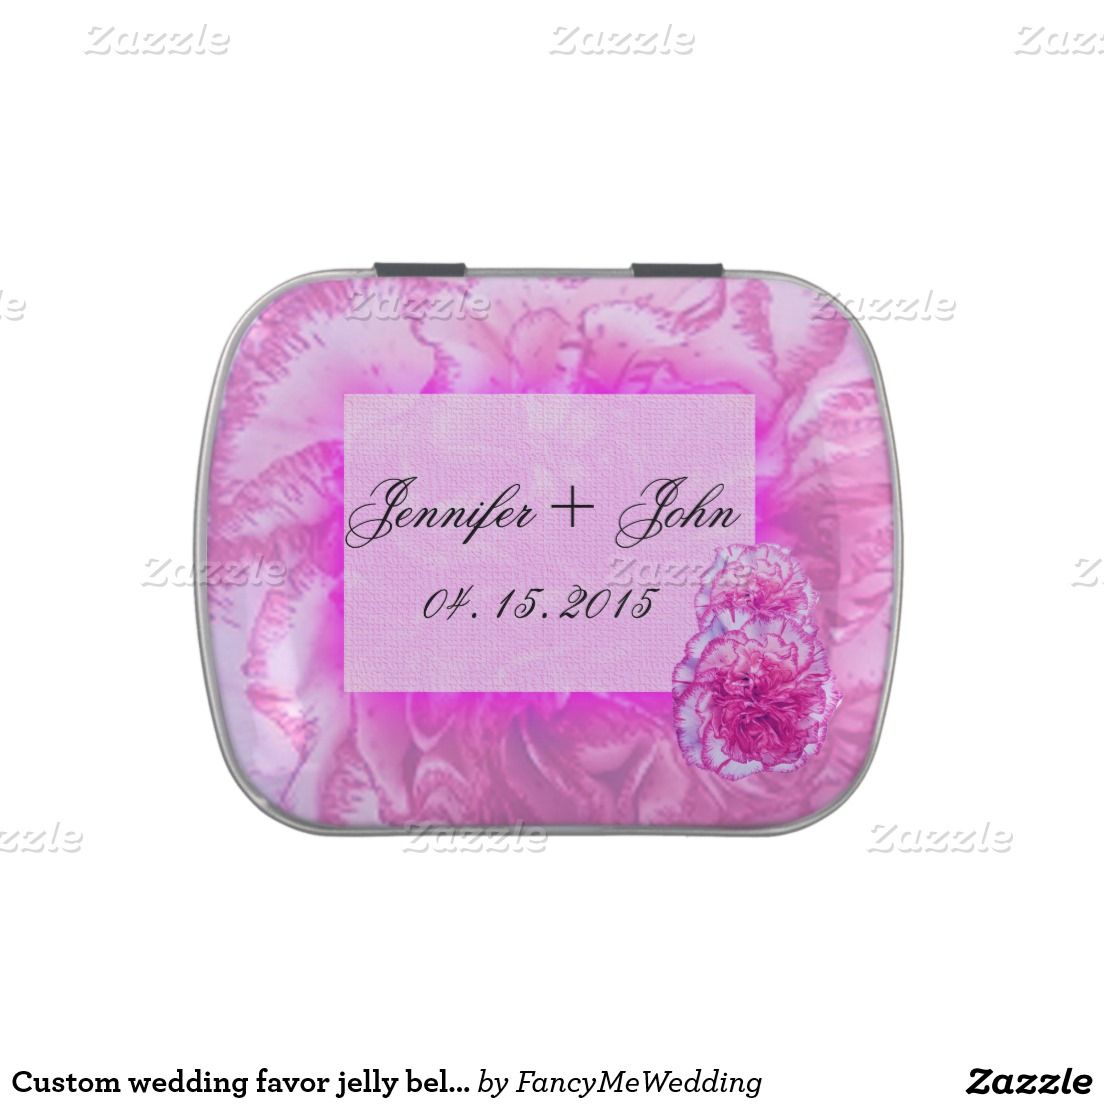 Custom wedding favor jelly belly jelly belly candy tins | Wedding ...